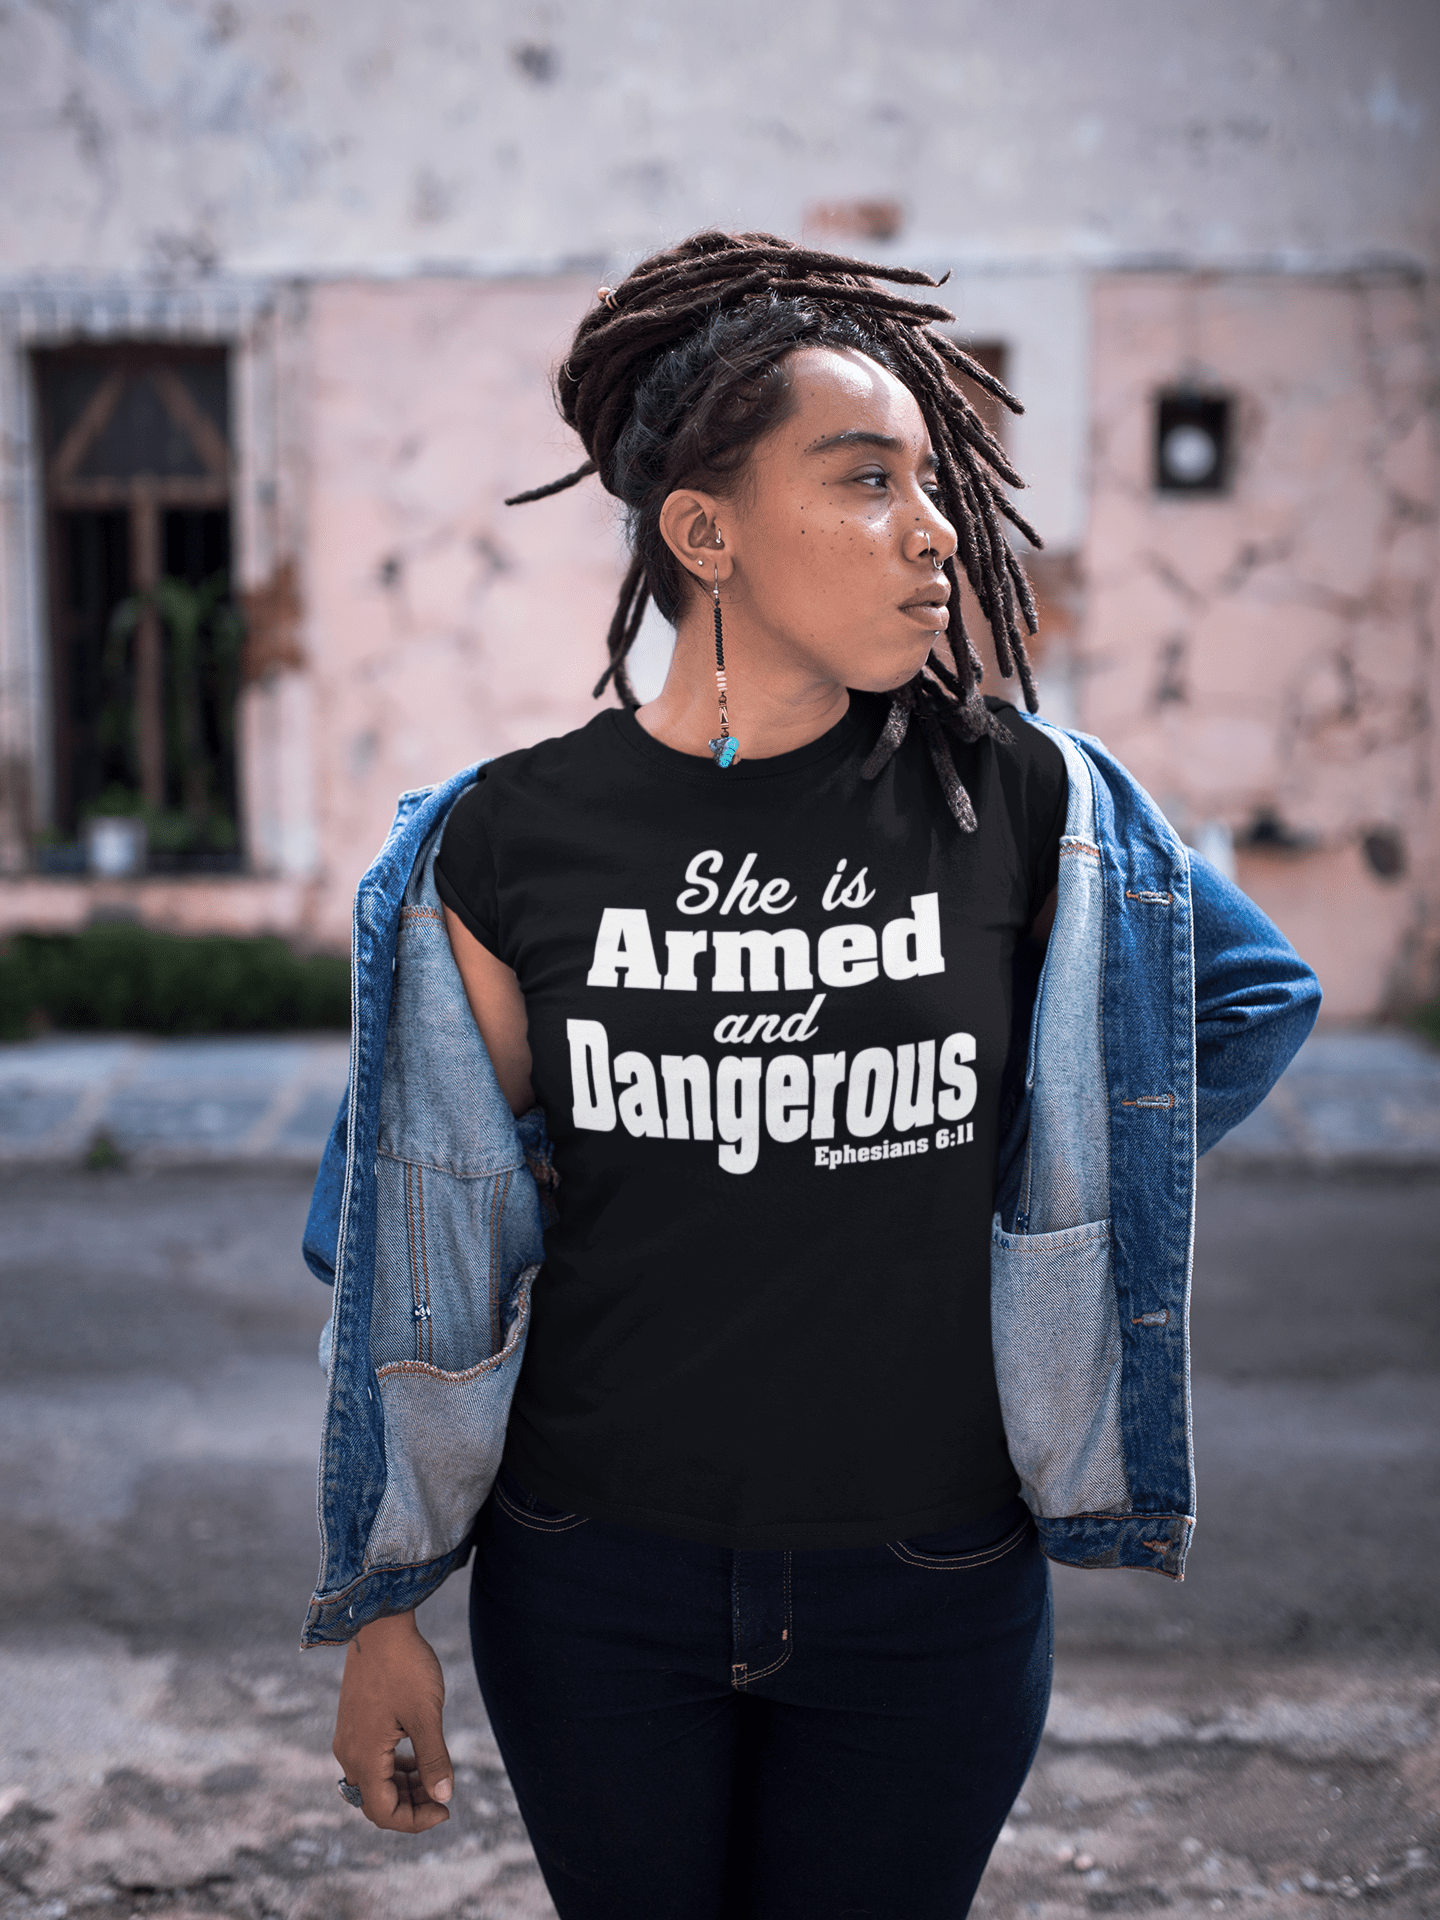 She is Armed and Dangerous Shirt